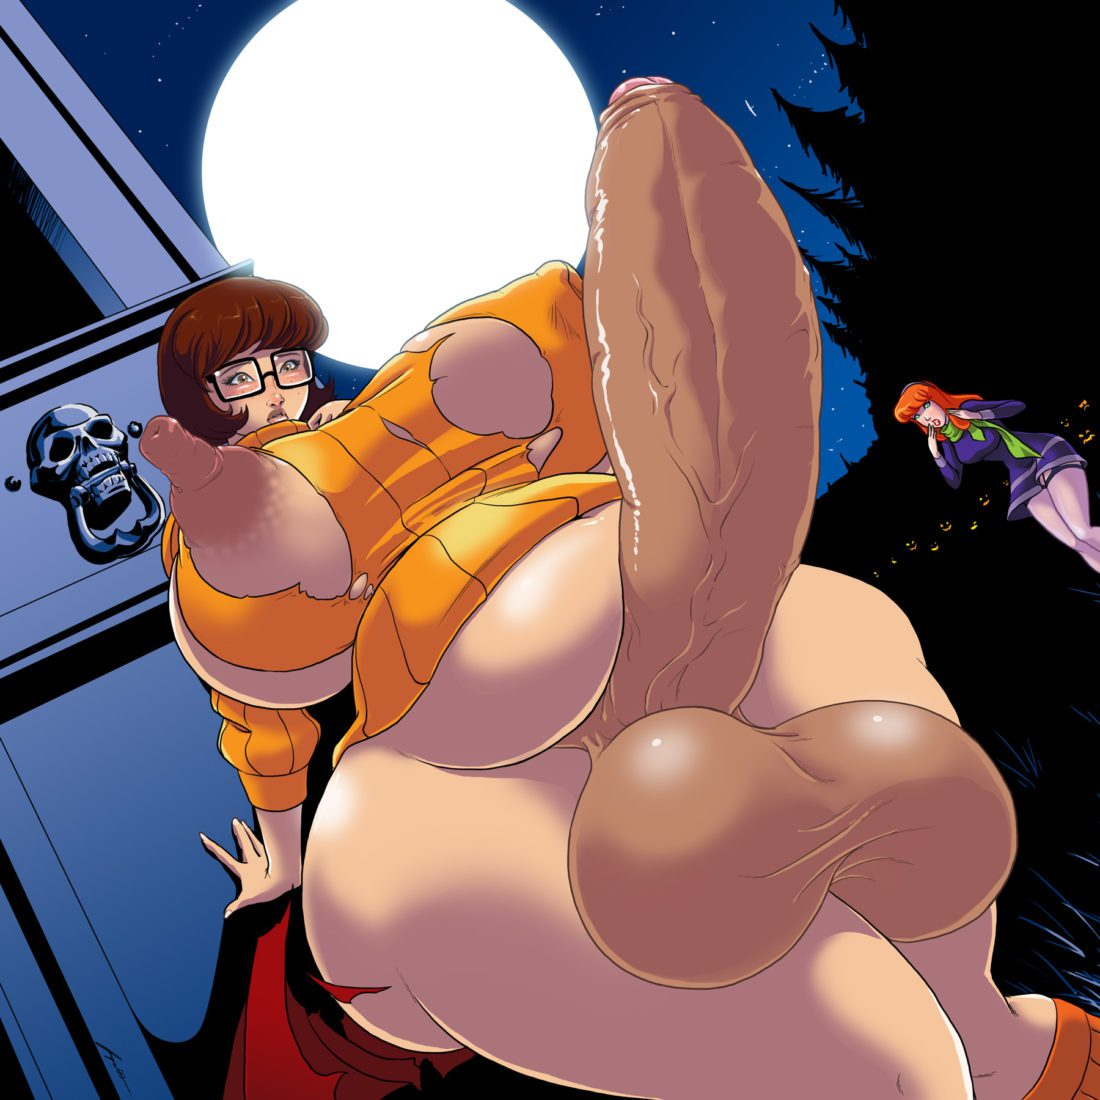 Jacques00 - Futanari Velma Dinkley Scooby-doo rule 34 porn